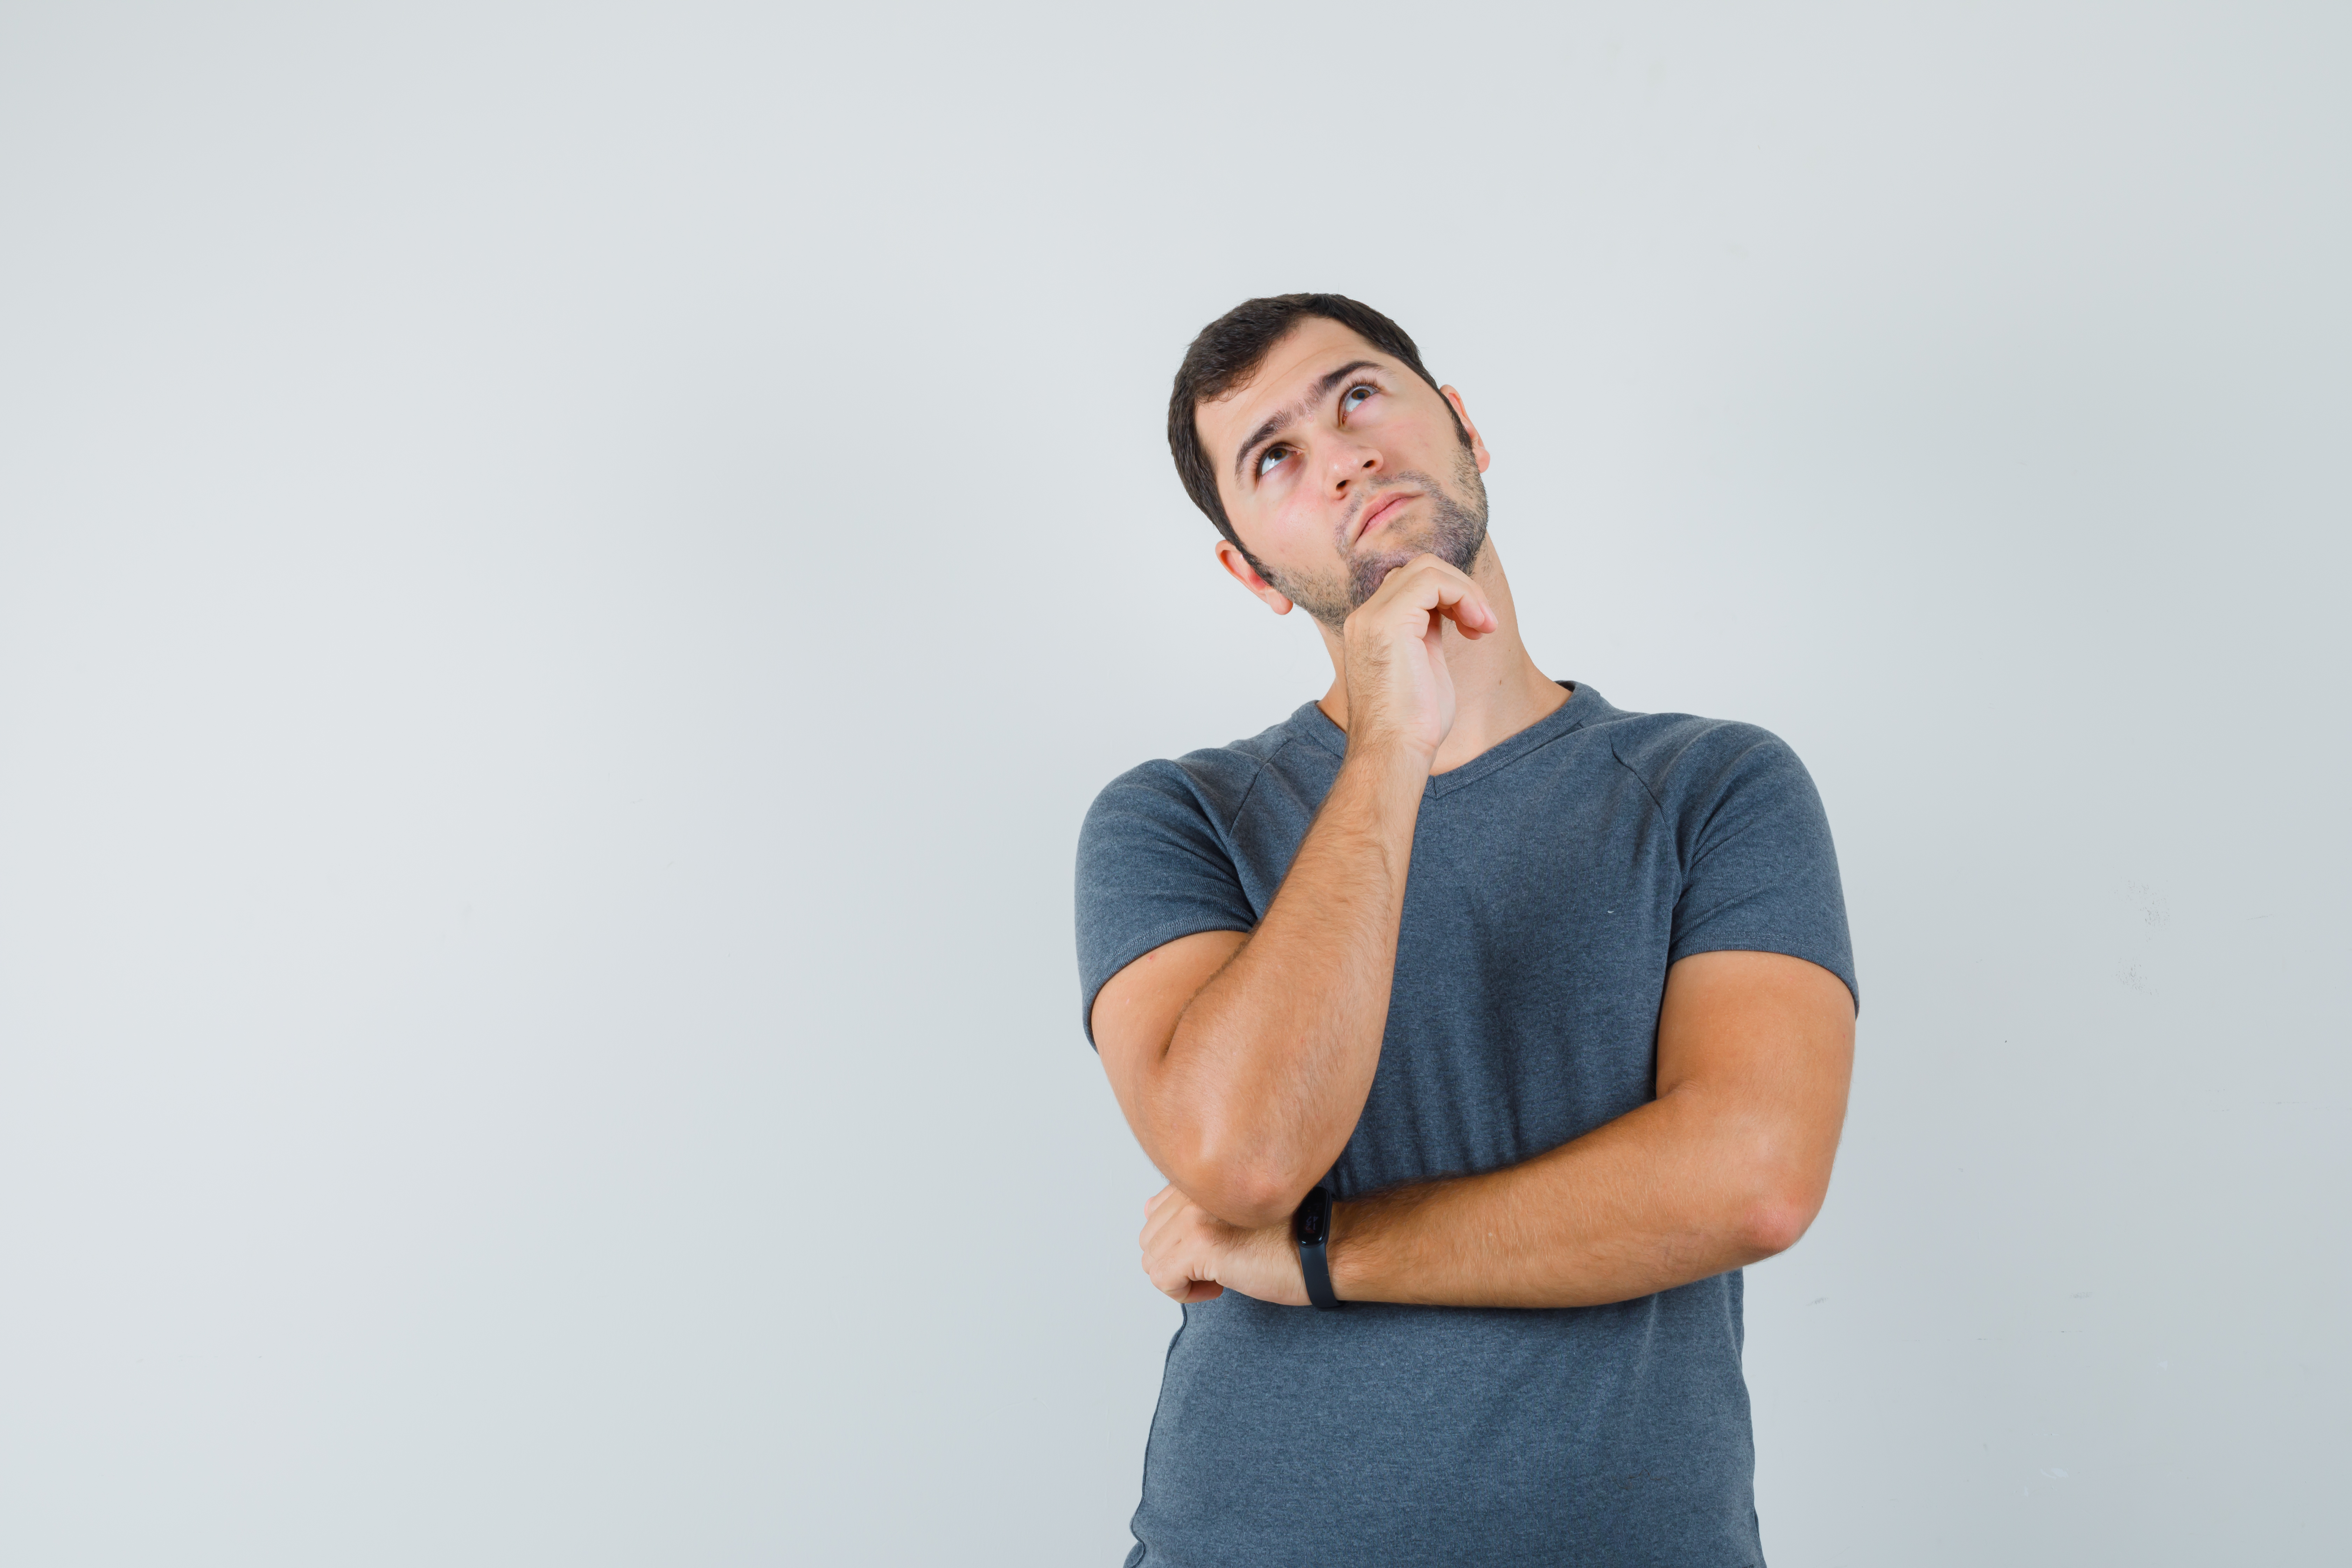 young-male-in-grey-t-shirt-propping-chin-on-hand-and-looking-pensive.jpg